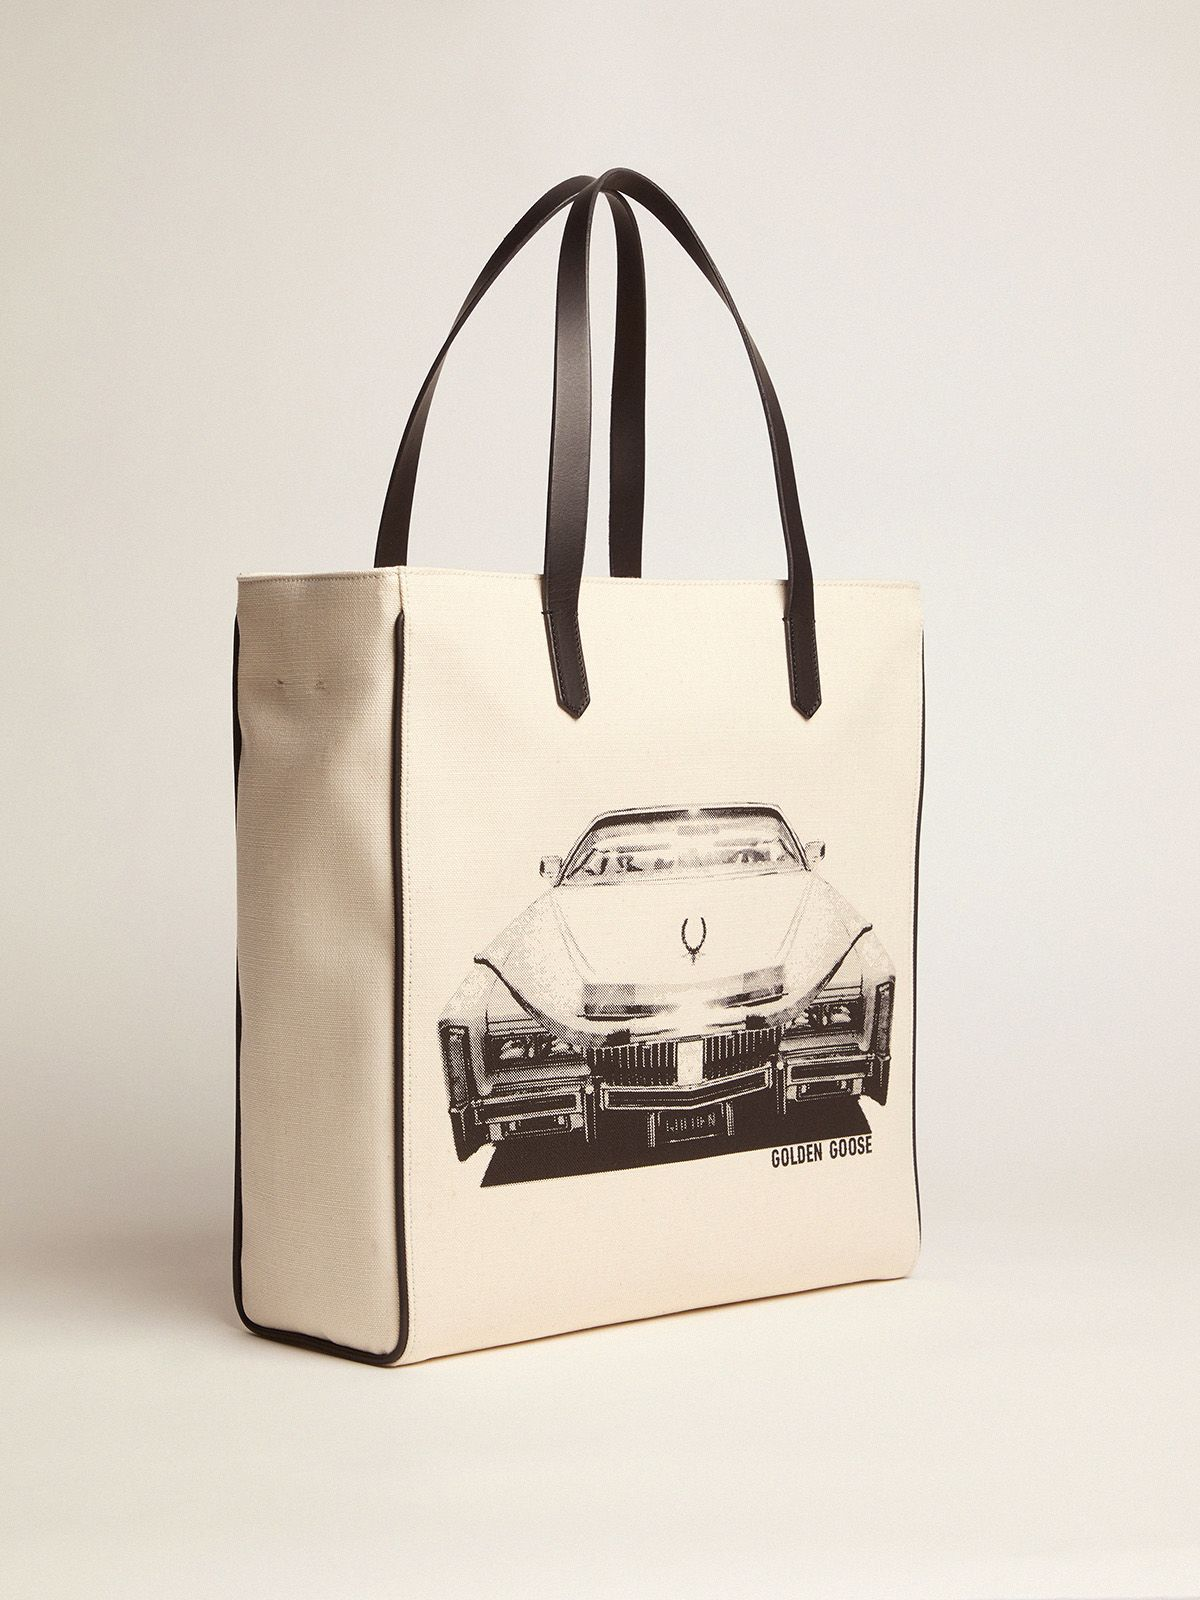 Golden Goose - Cadillac print North-South California Bag in